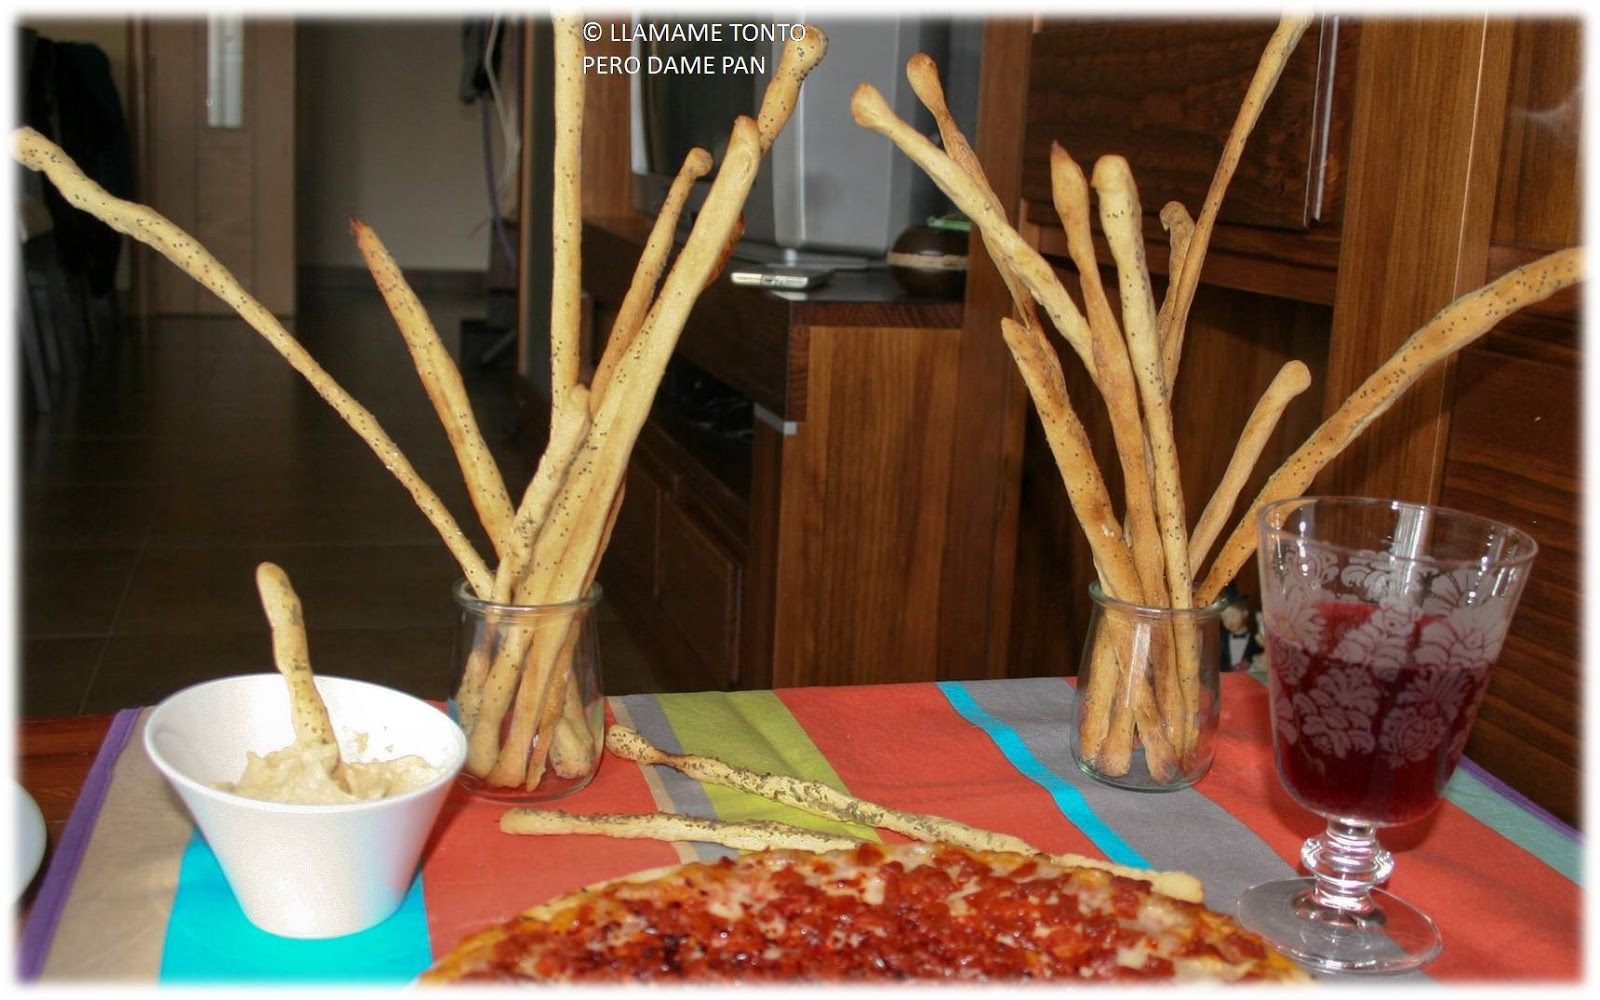 Grisines, palitos de pan.